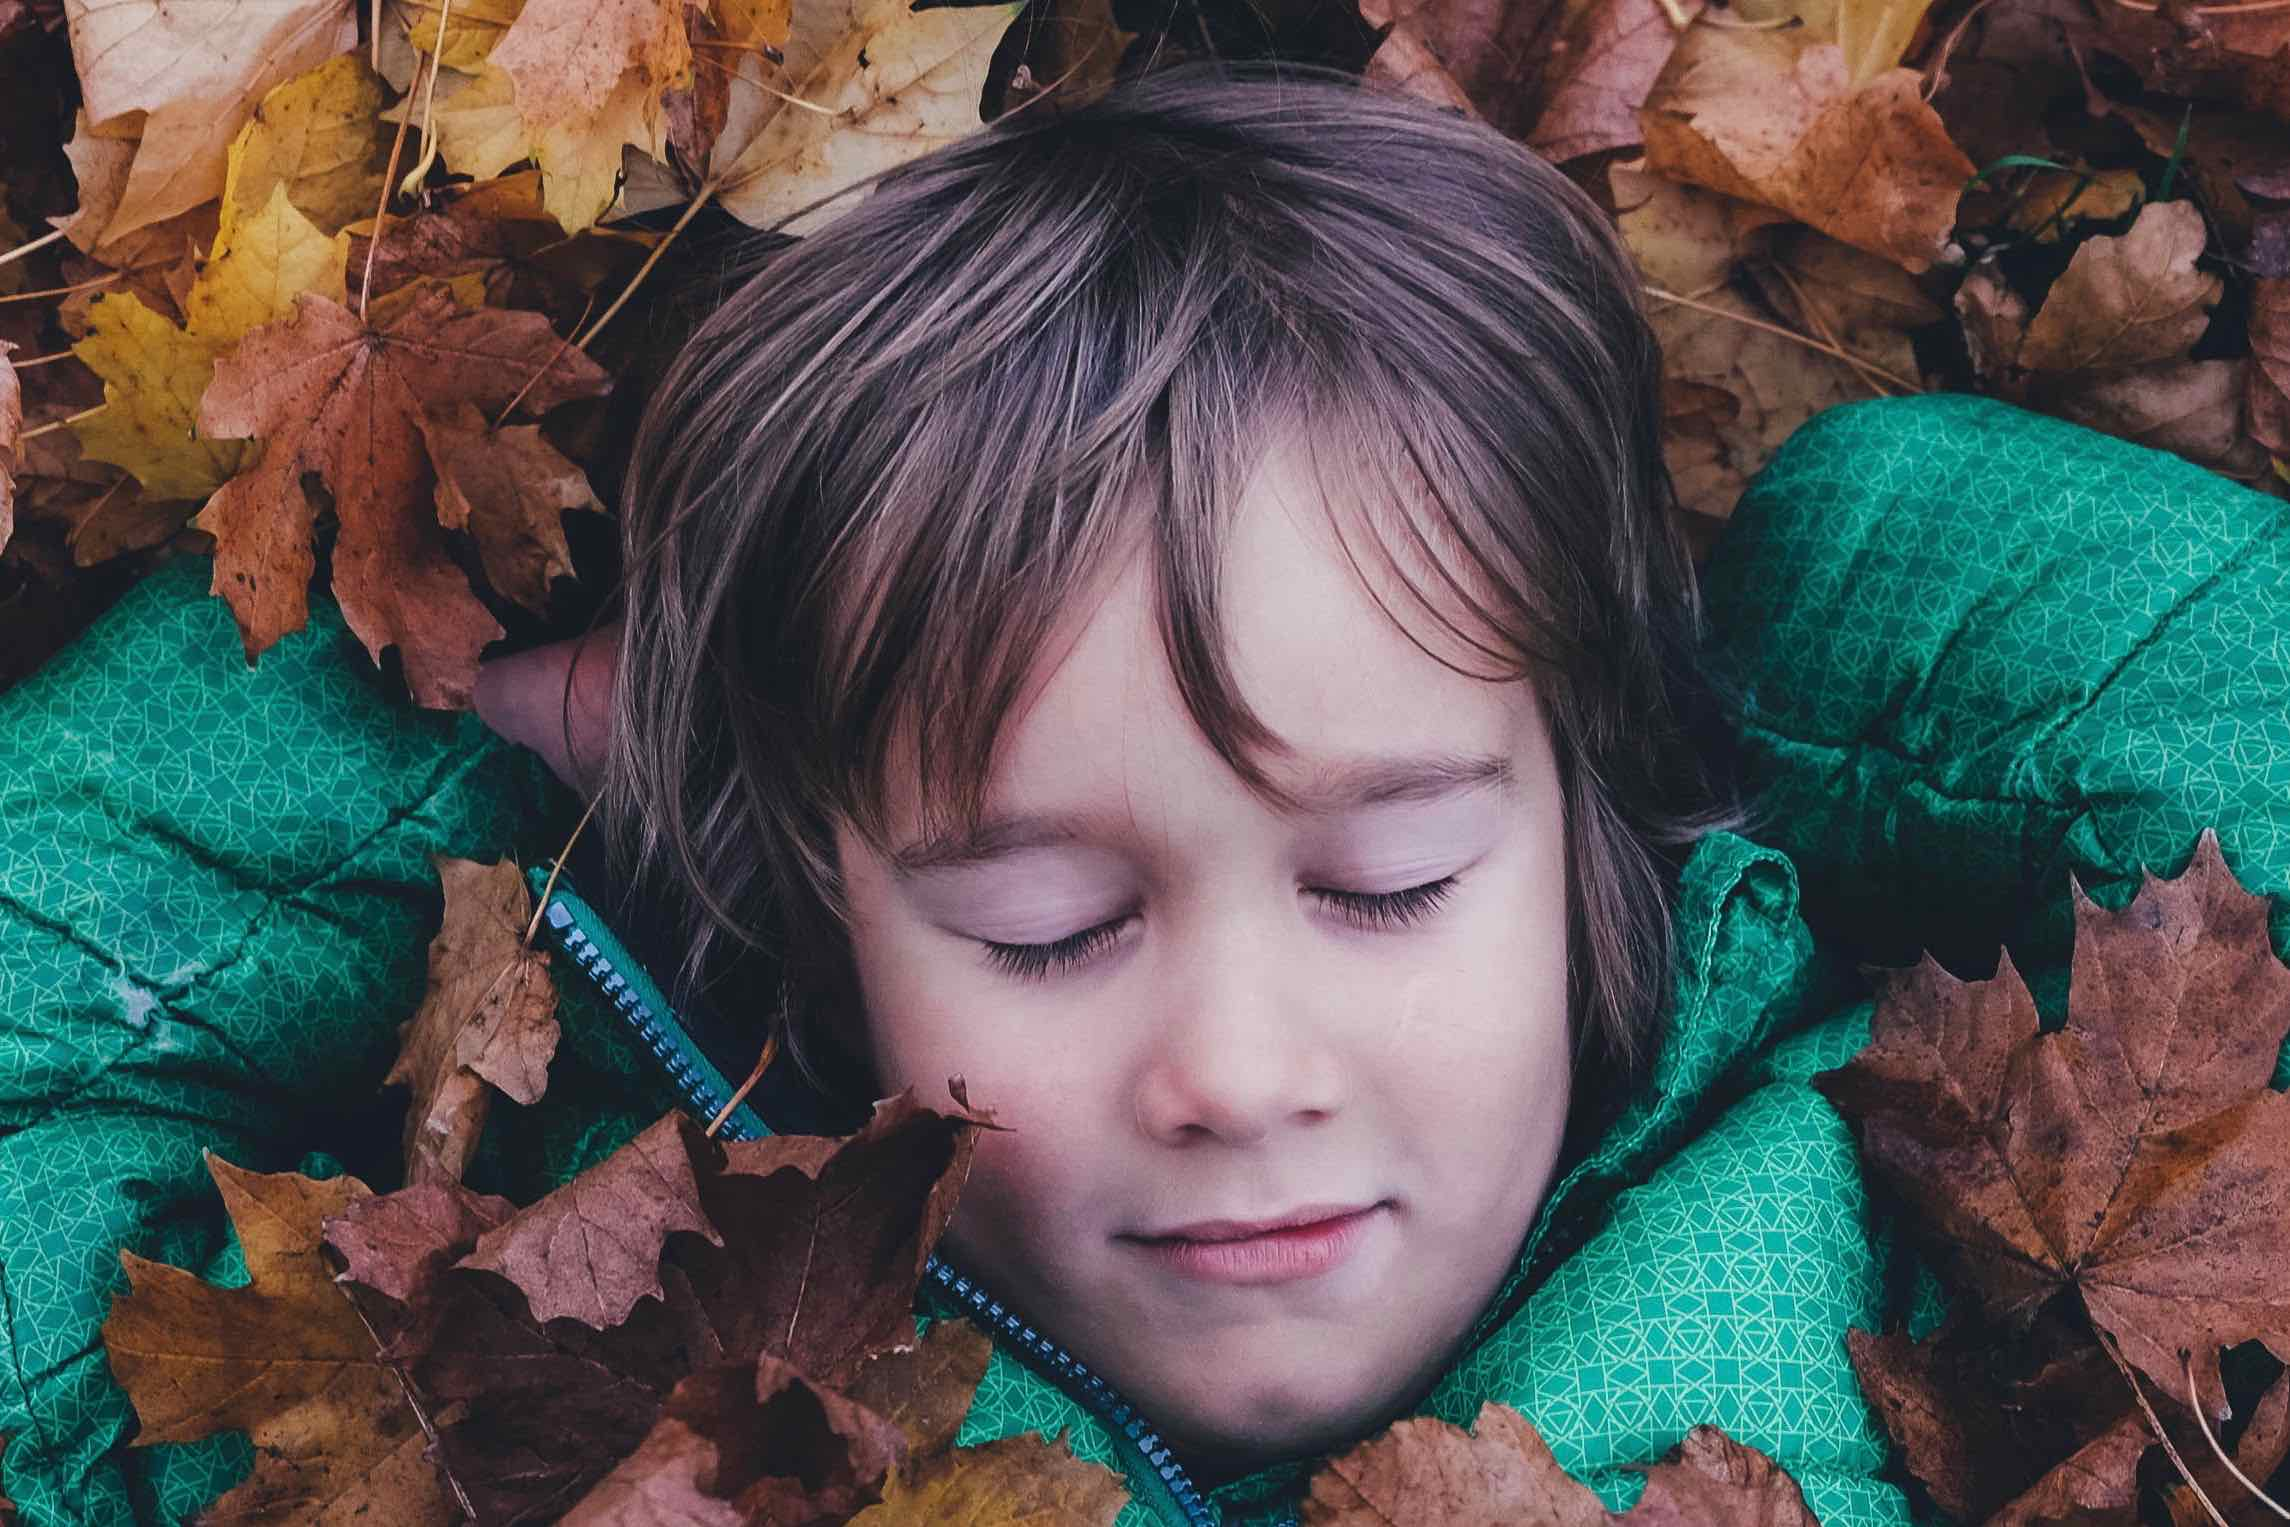 5-Minute Mindfulness Meditations for Children, 8 Years & Up